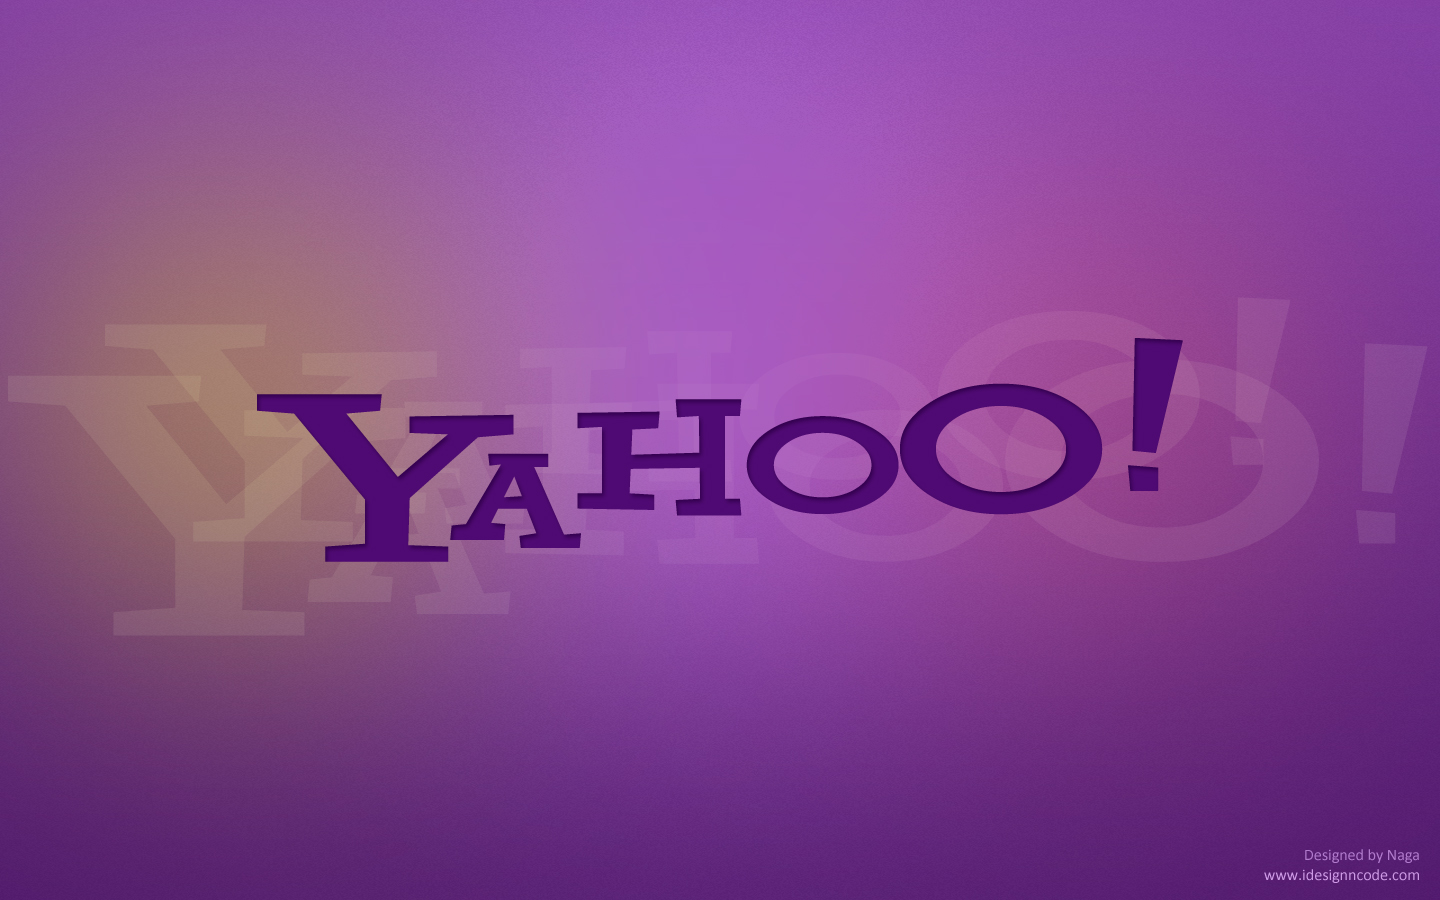 yahoo Wallpaper and Background Image | 1440x900 | ID:462846